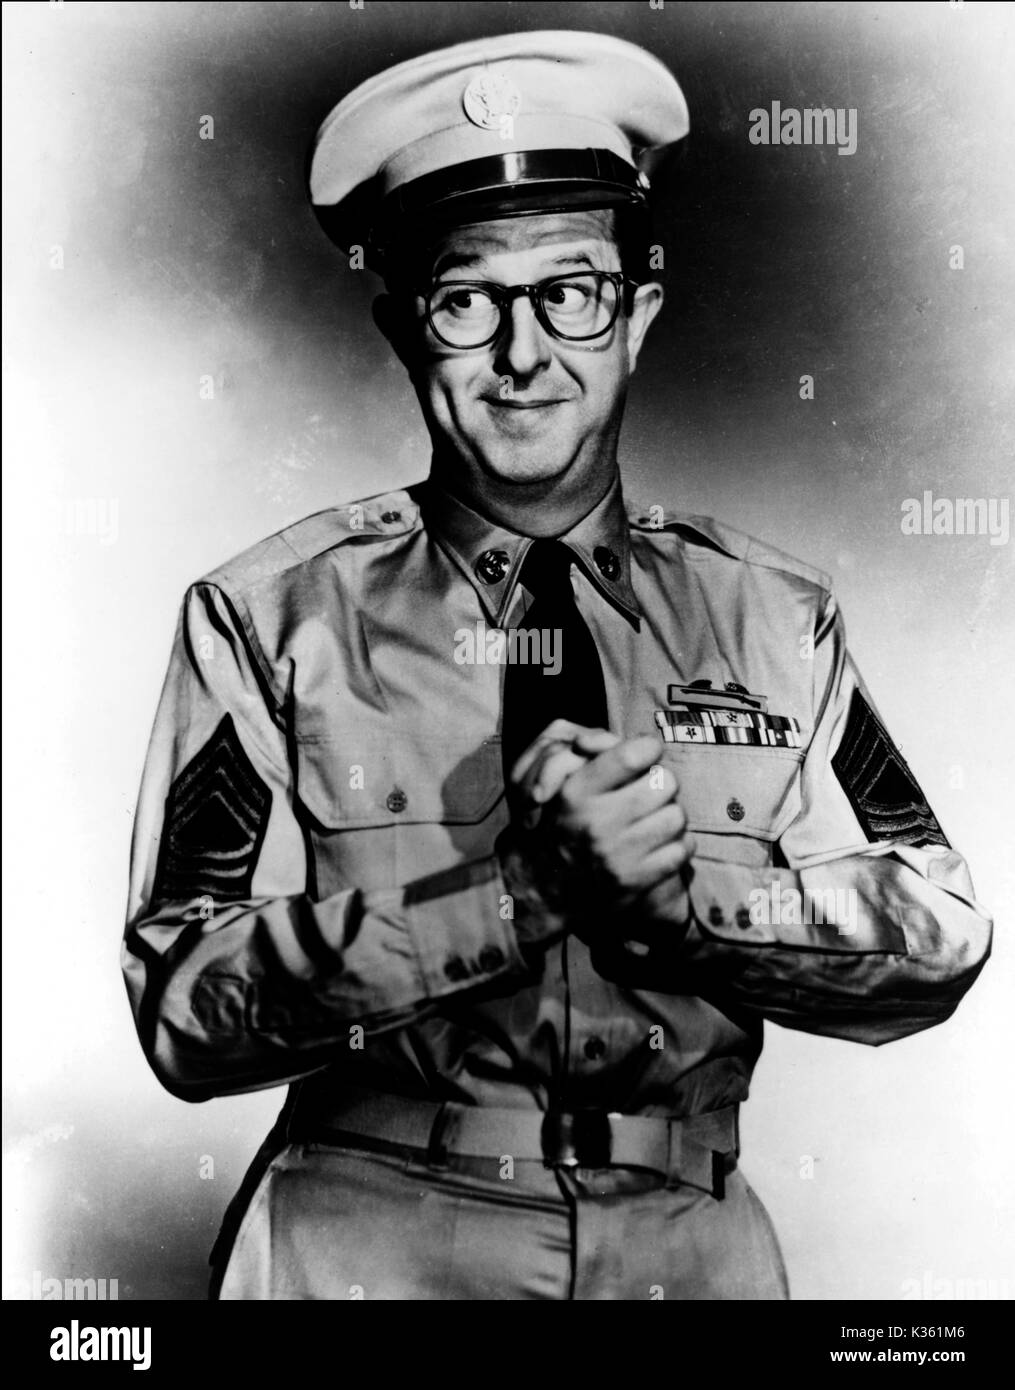 THE PHIL SILVERS SHOW PHIL SILVERS as sergeant bilko - Stock Image